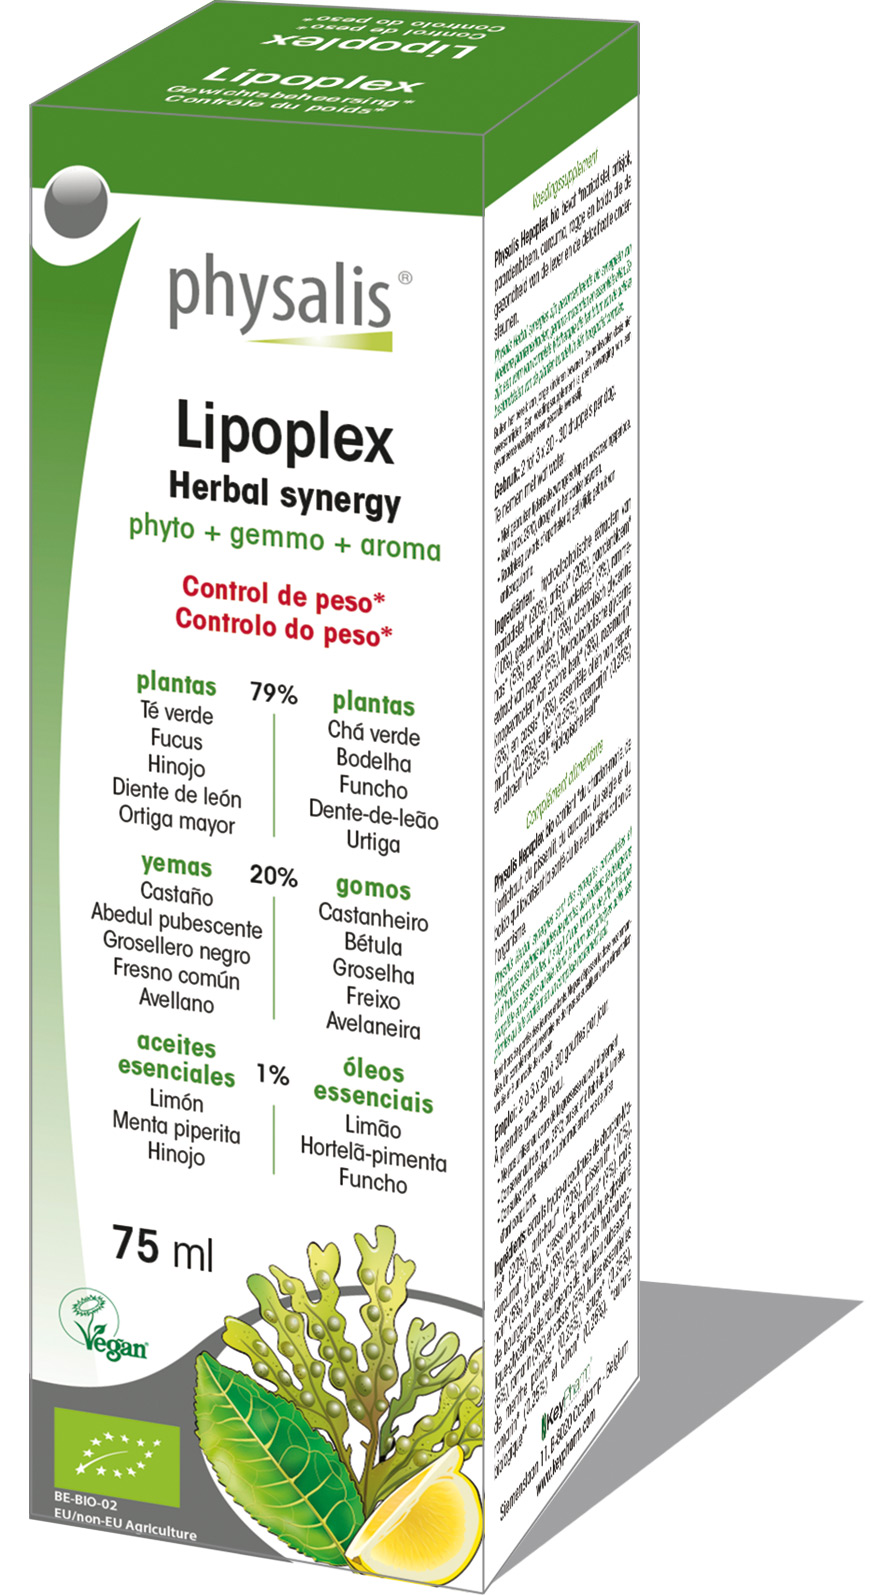 Lipoplex - Herbal synergy